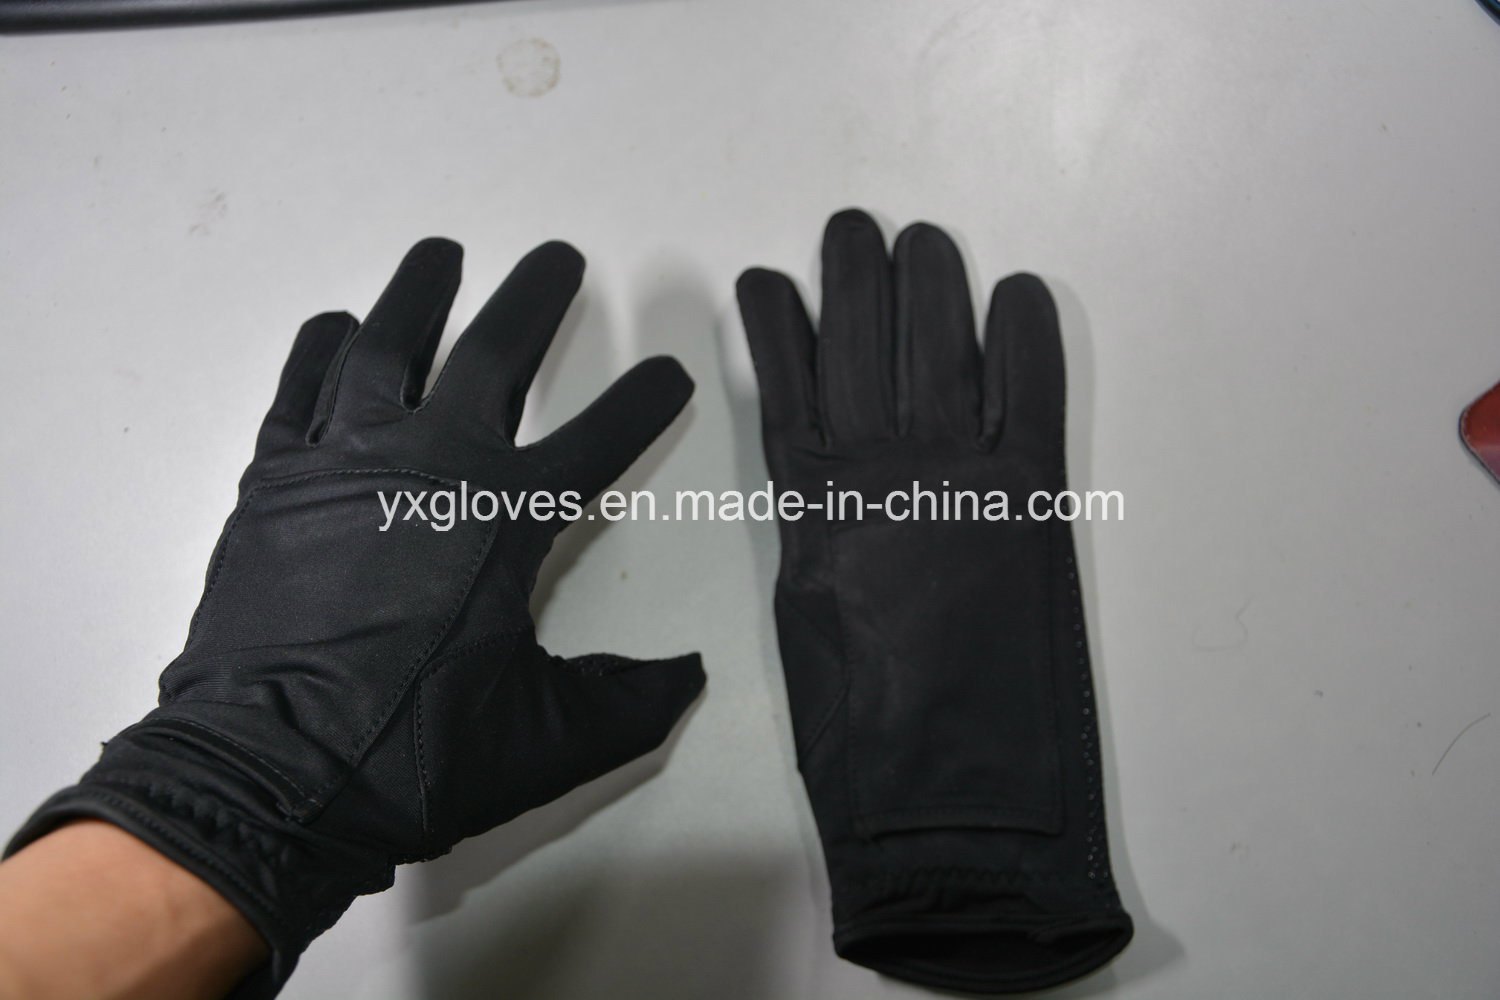 Sporting Glove-Work Glove-Gloves-Safety Glove-Hand Glove-Glove